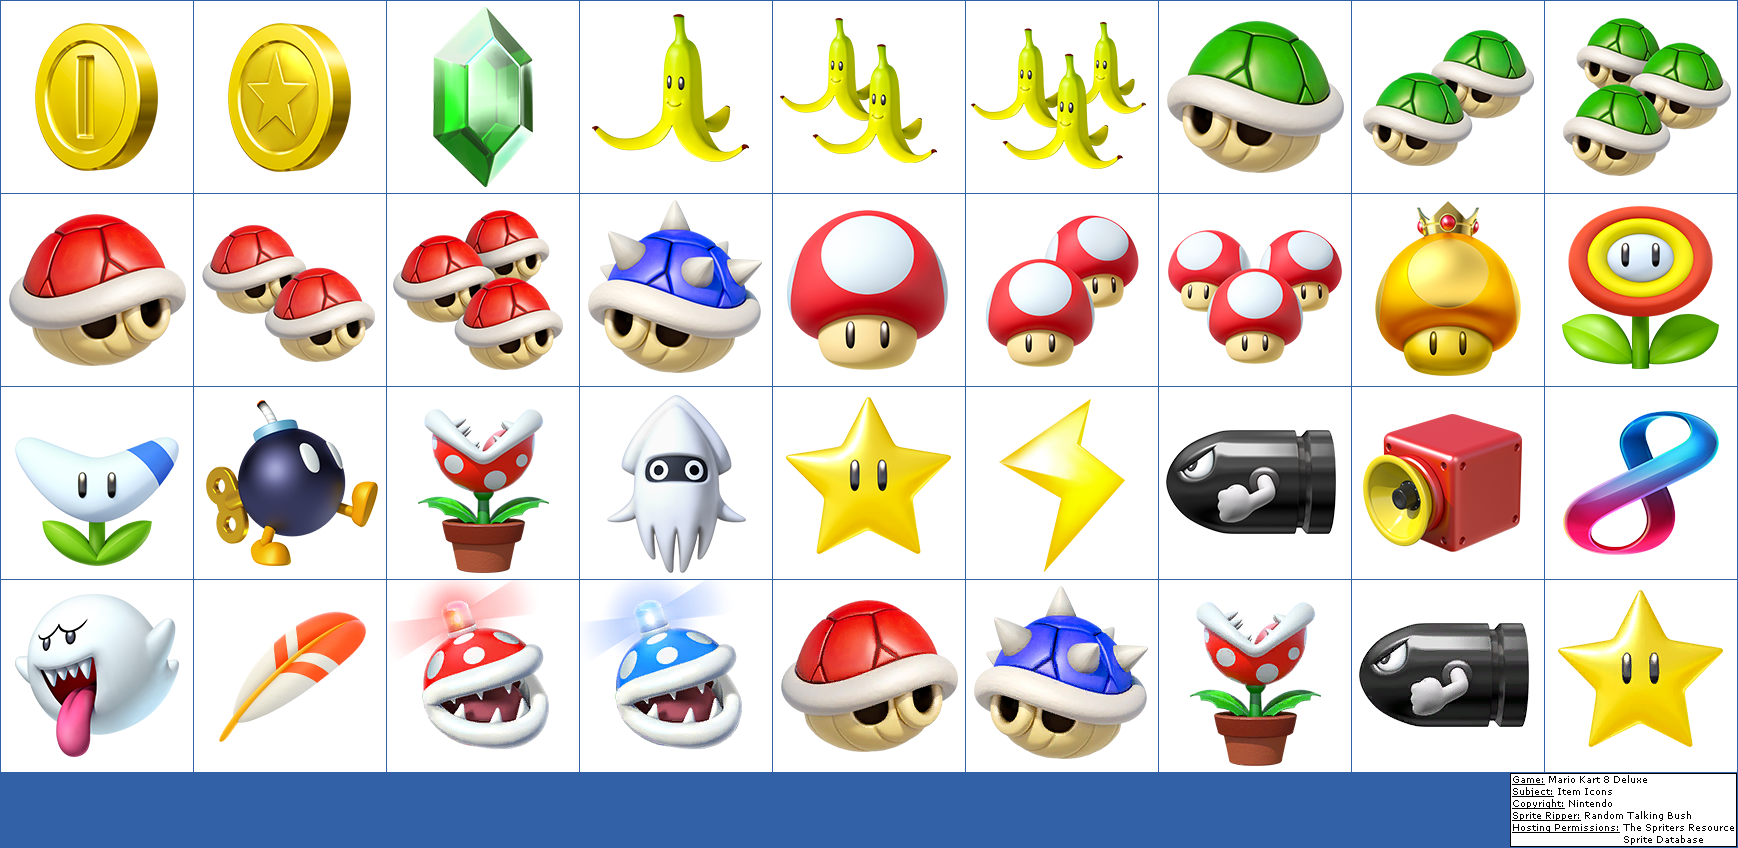 All Mario Kart 8 Items